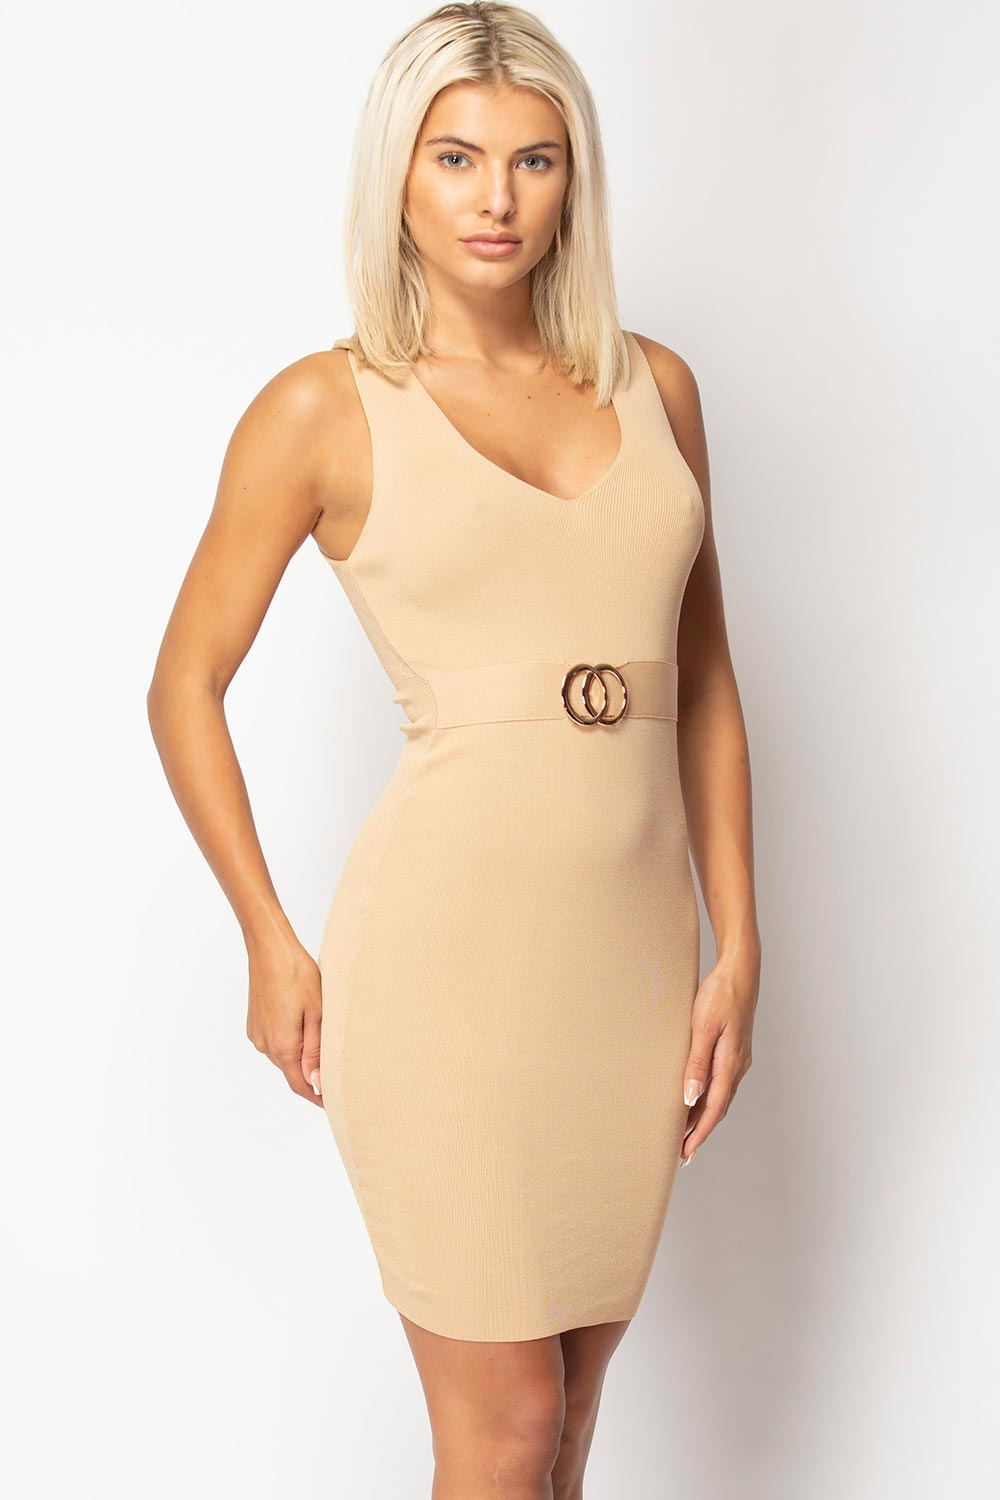 chanel inspired bodycon dress